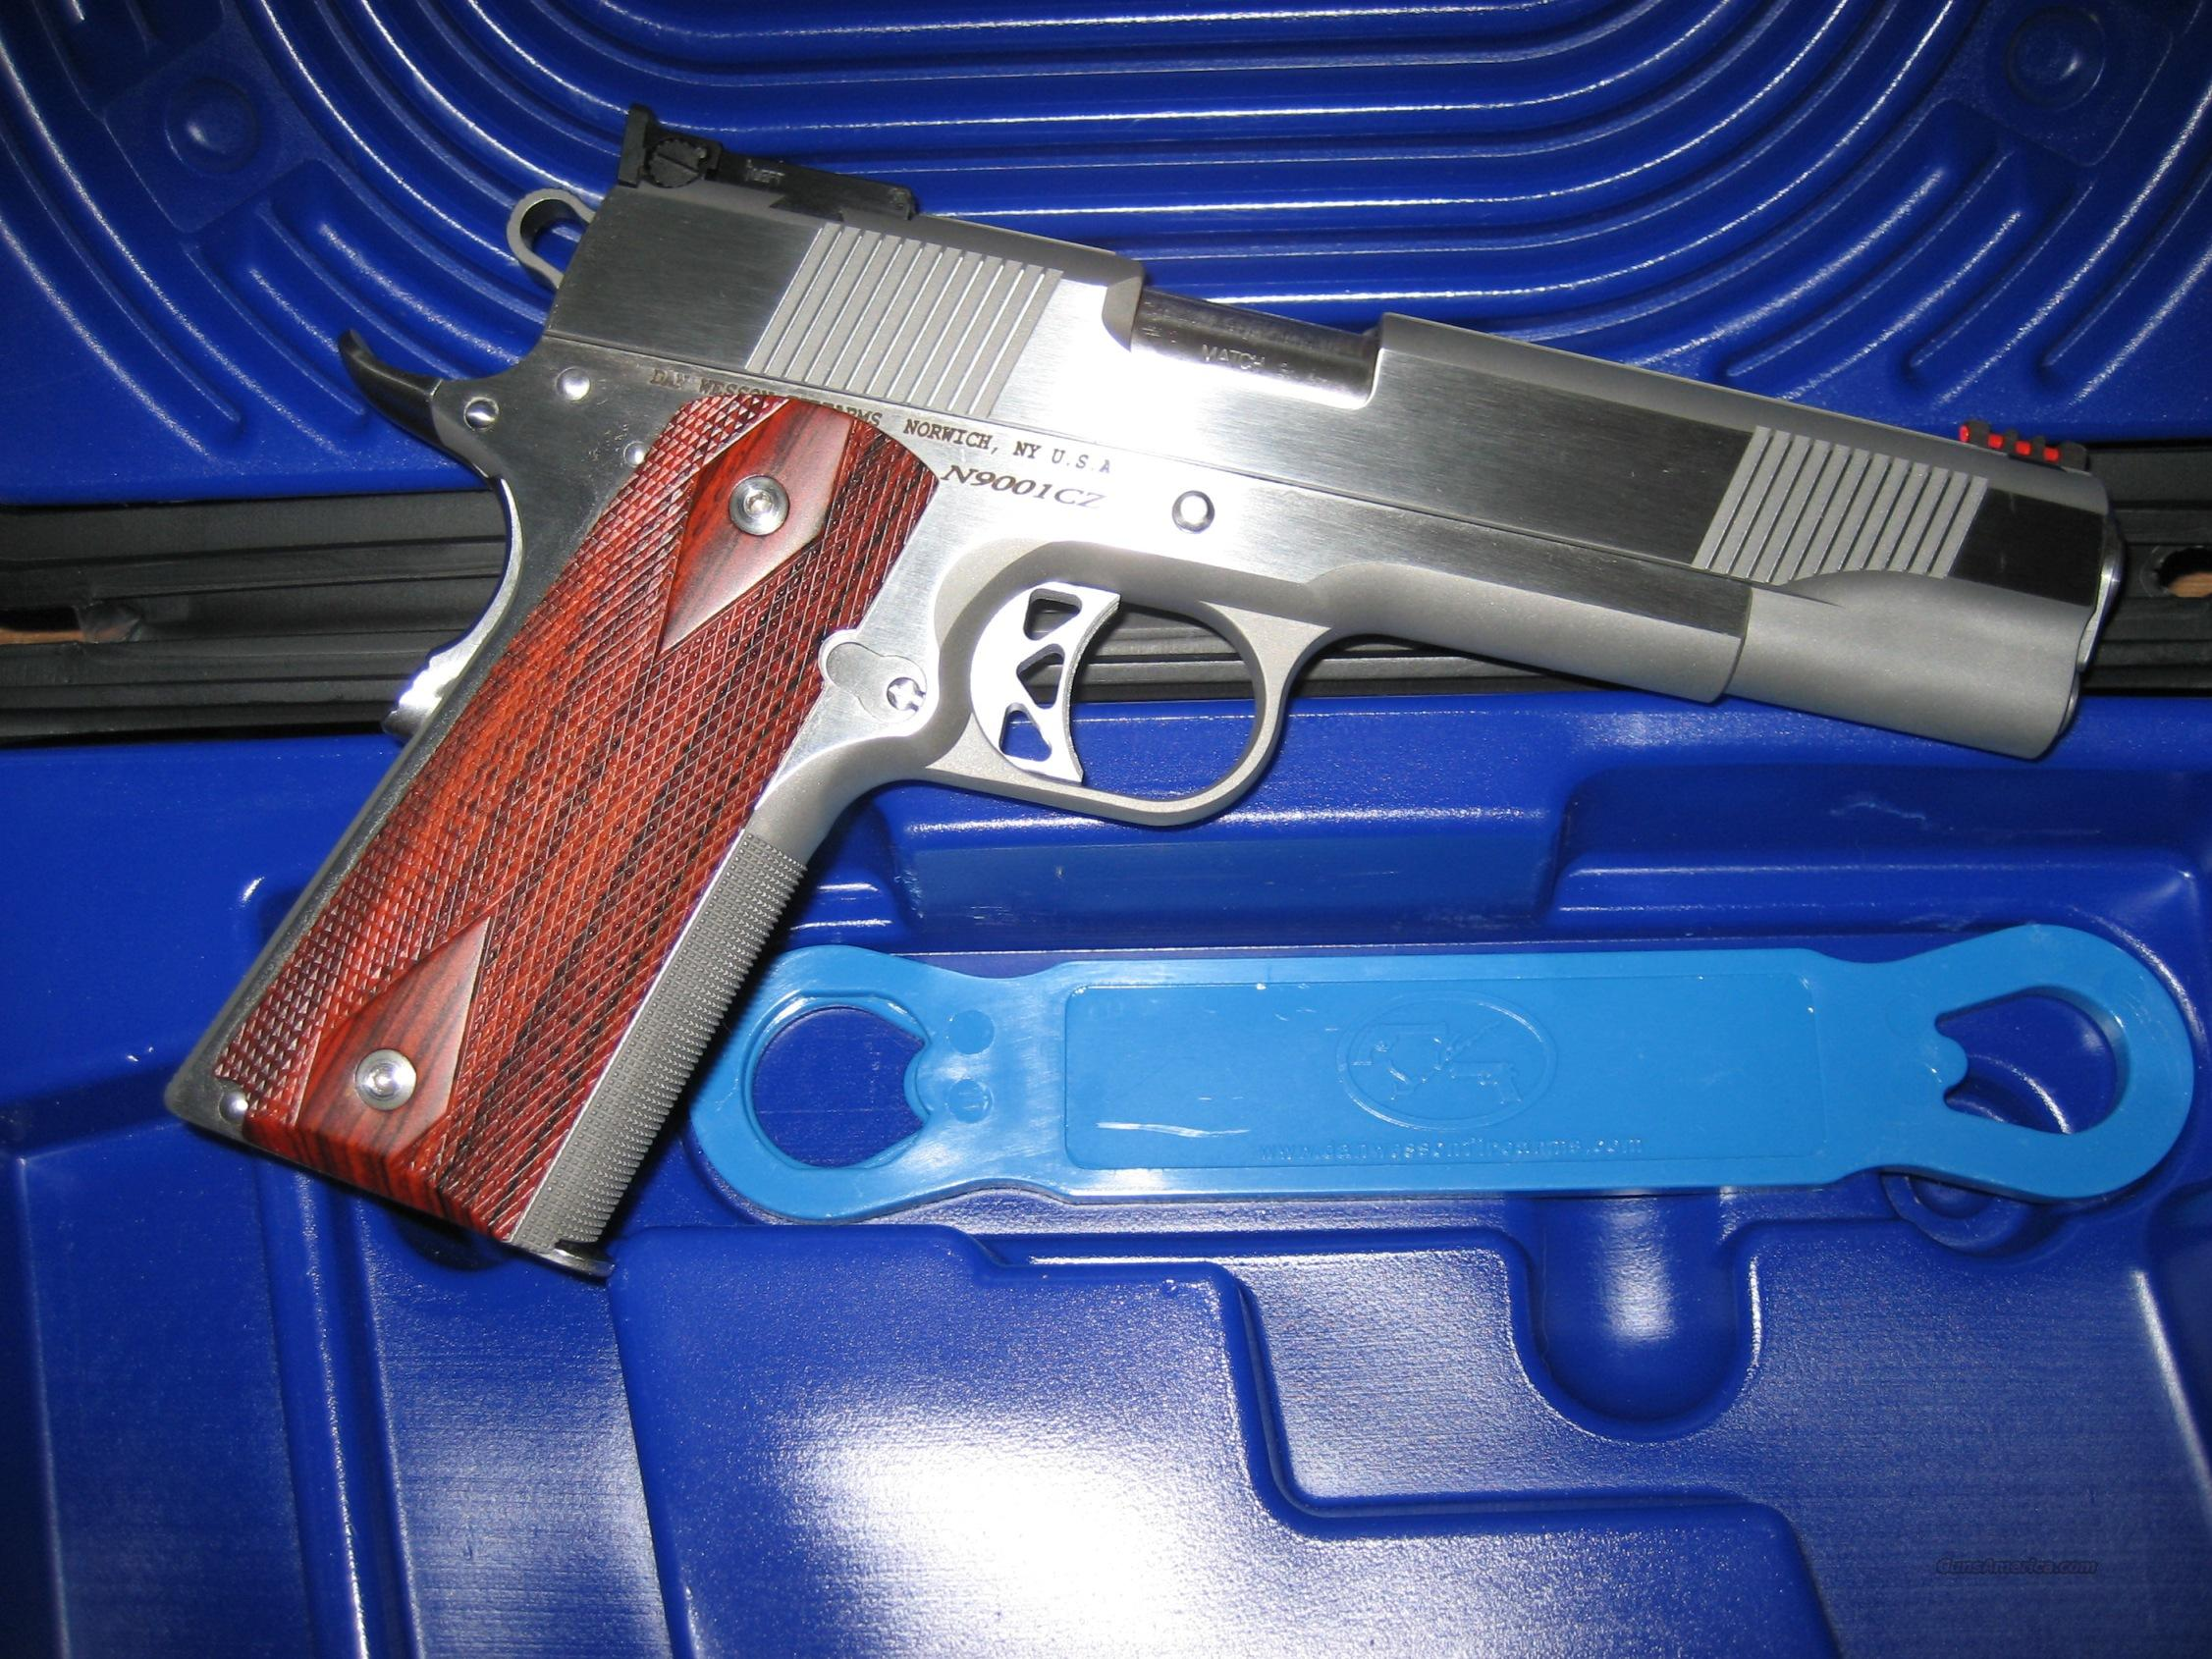 DAN WESSON POINTMAN NINE (PM9) SERIAL # 001  Guns > Pistols > 1911 Pistol Copies (non-Colt)